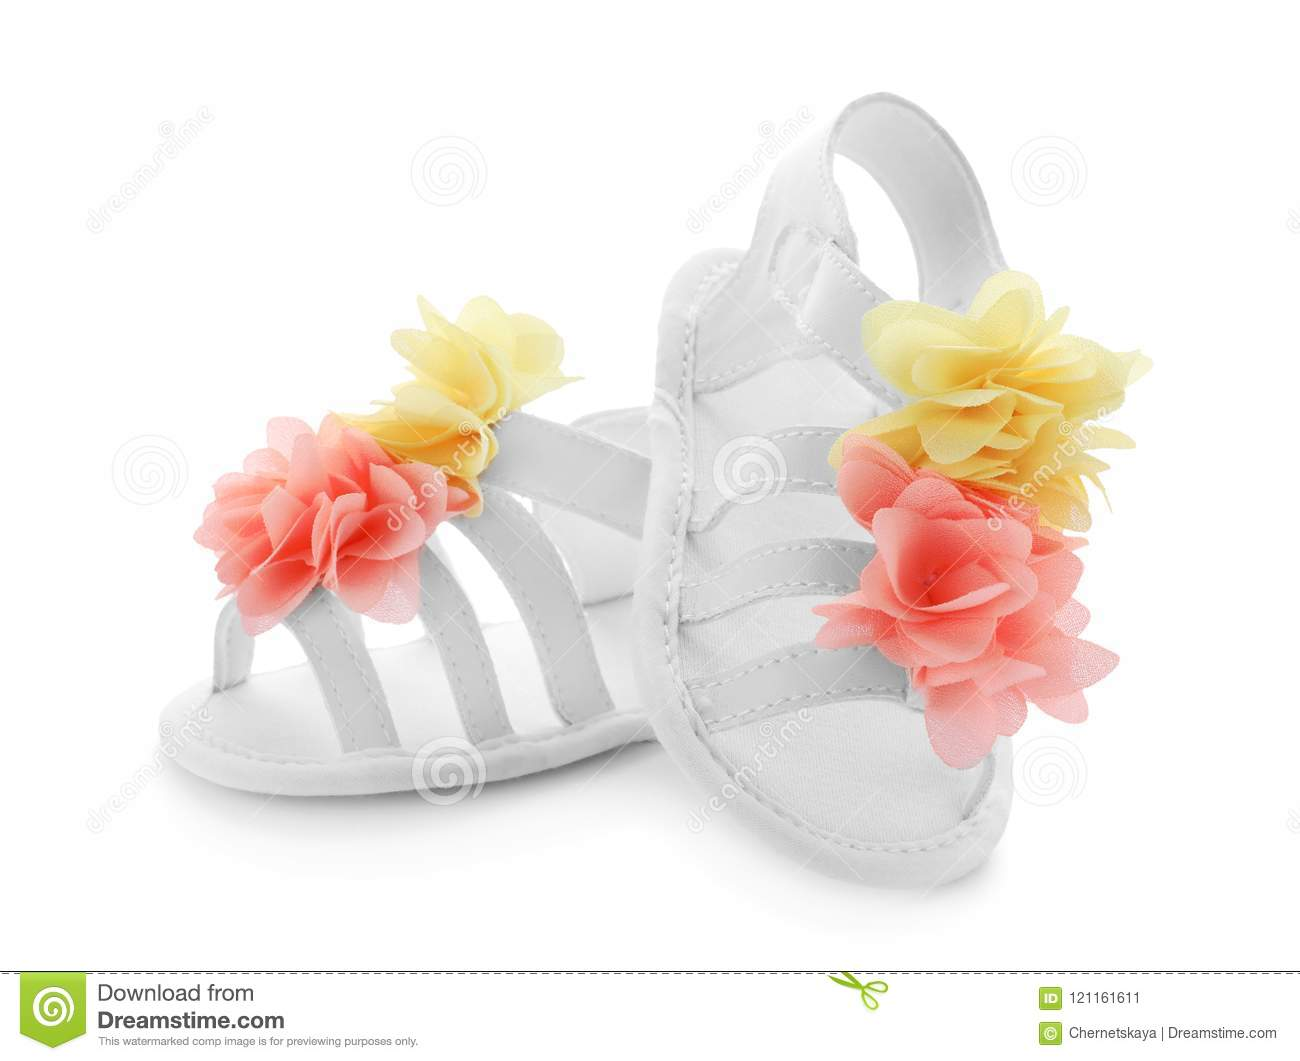 3b41b9e54a037 Pair Of Baby Sandals Decorated With Flowers Stock Image - Image of ...